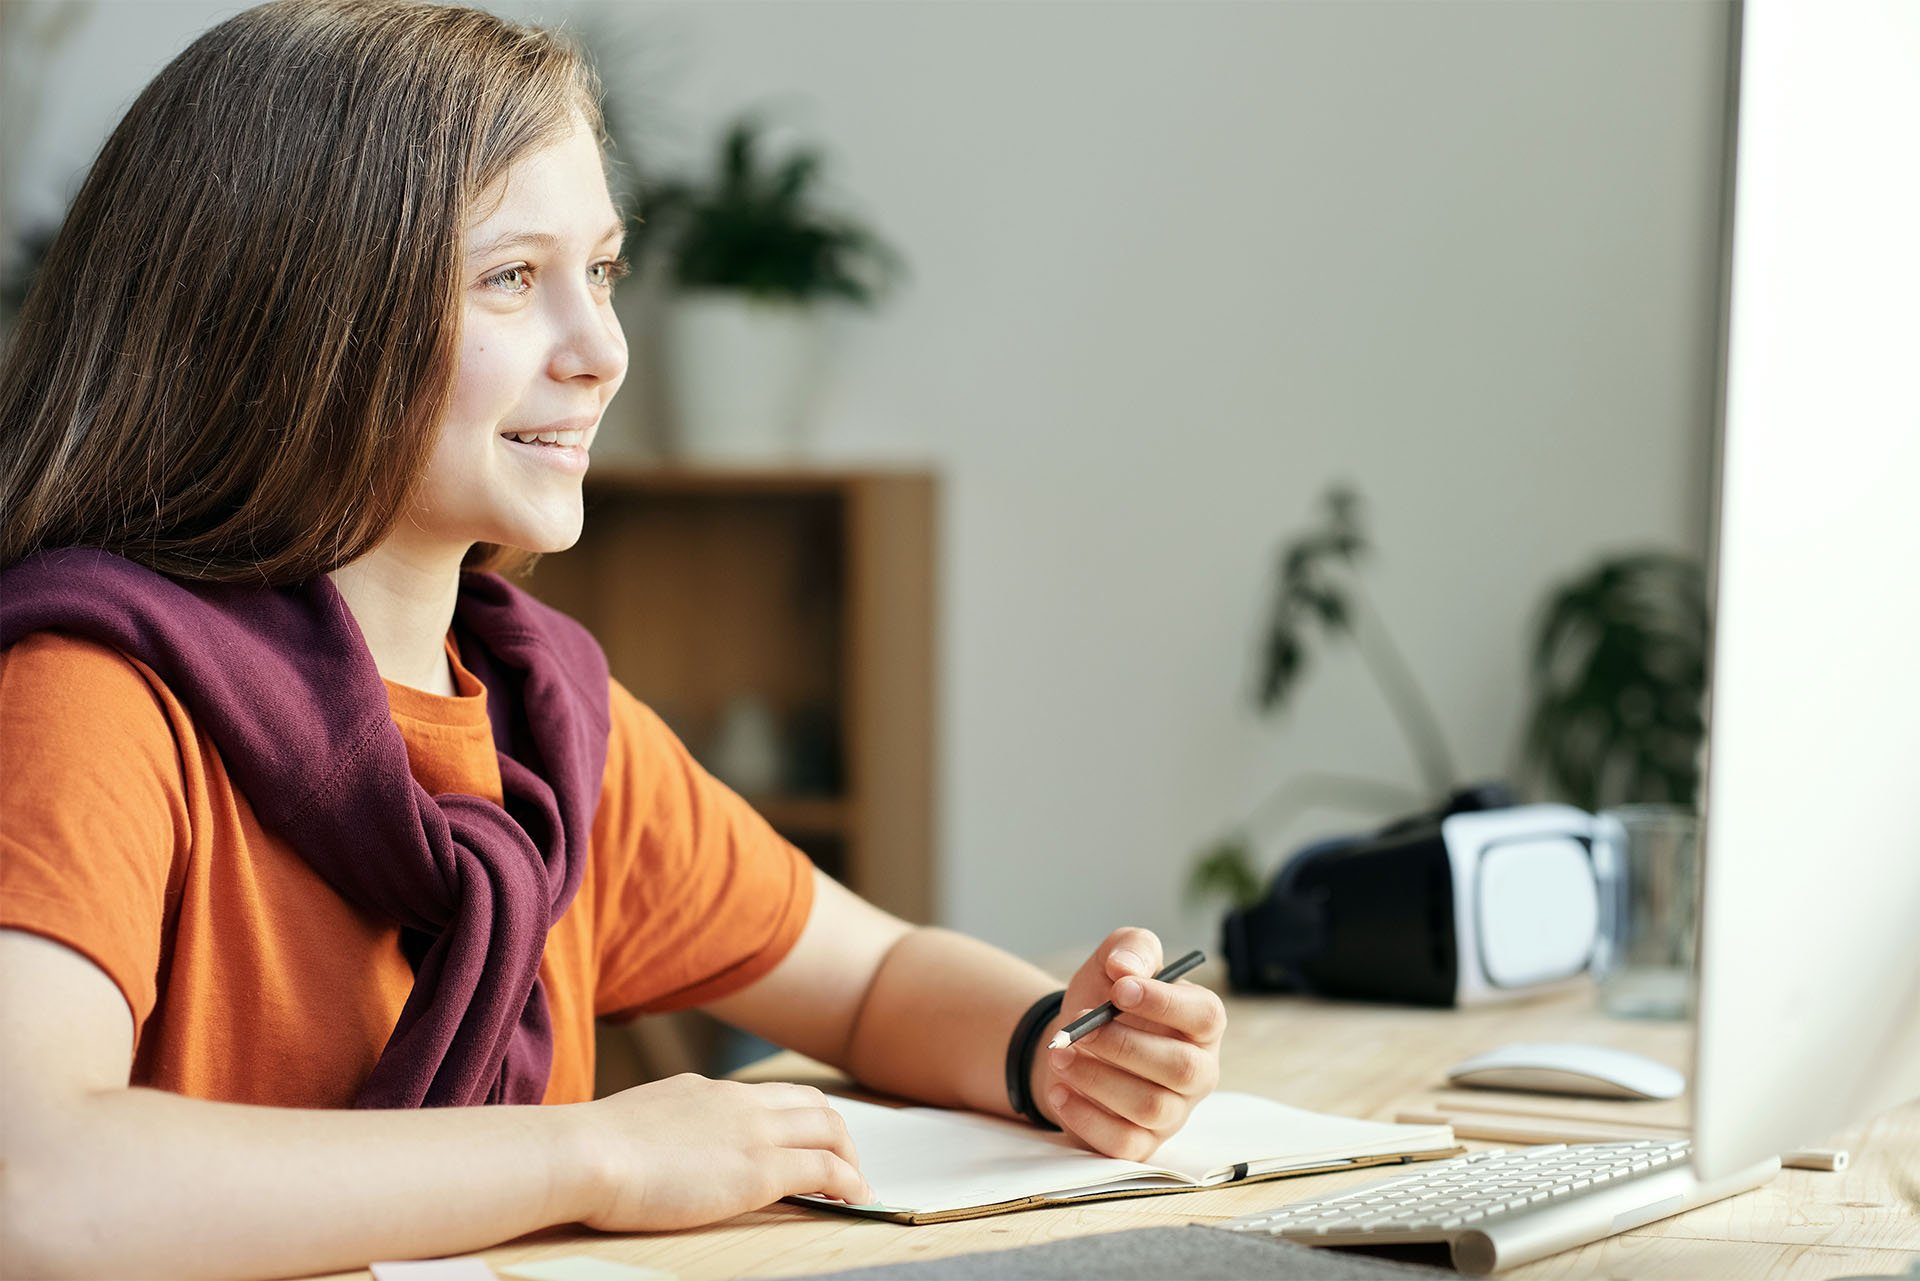 Handy Ergonomic Tips for Teens Studying at Home